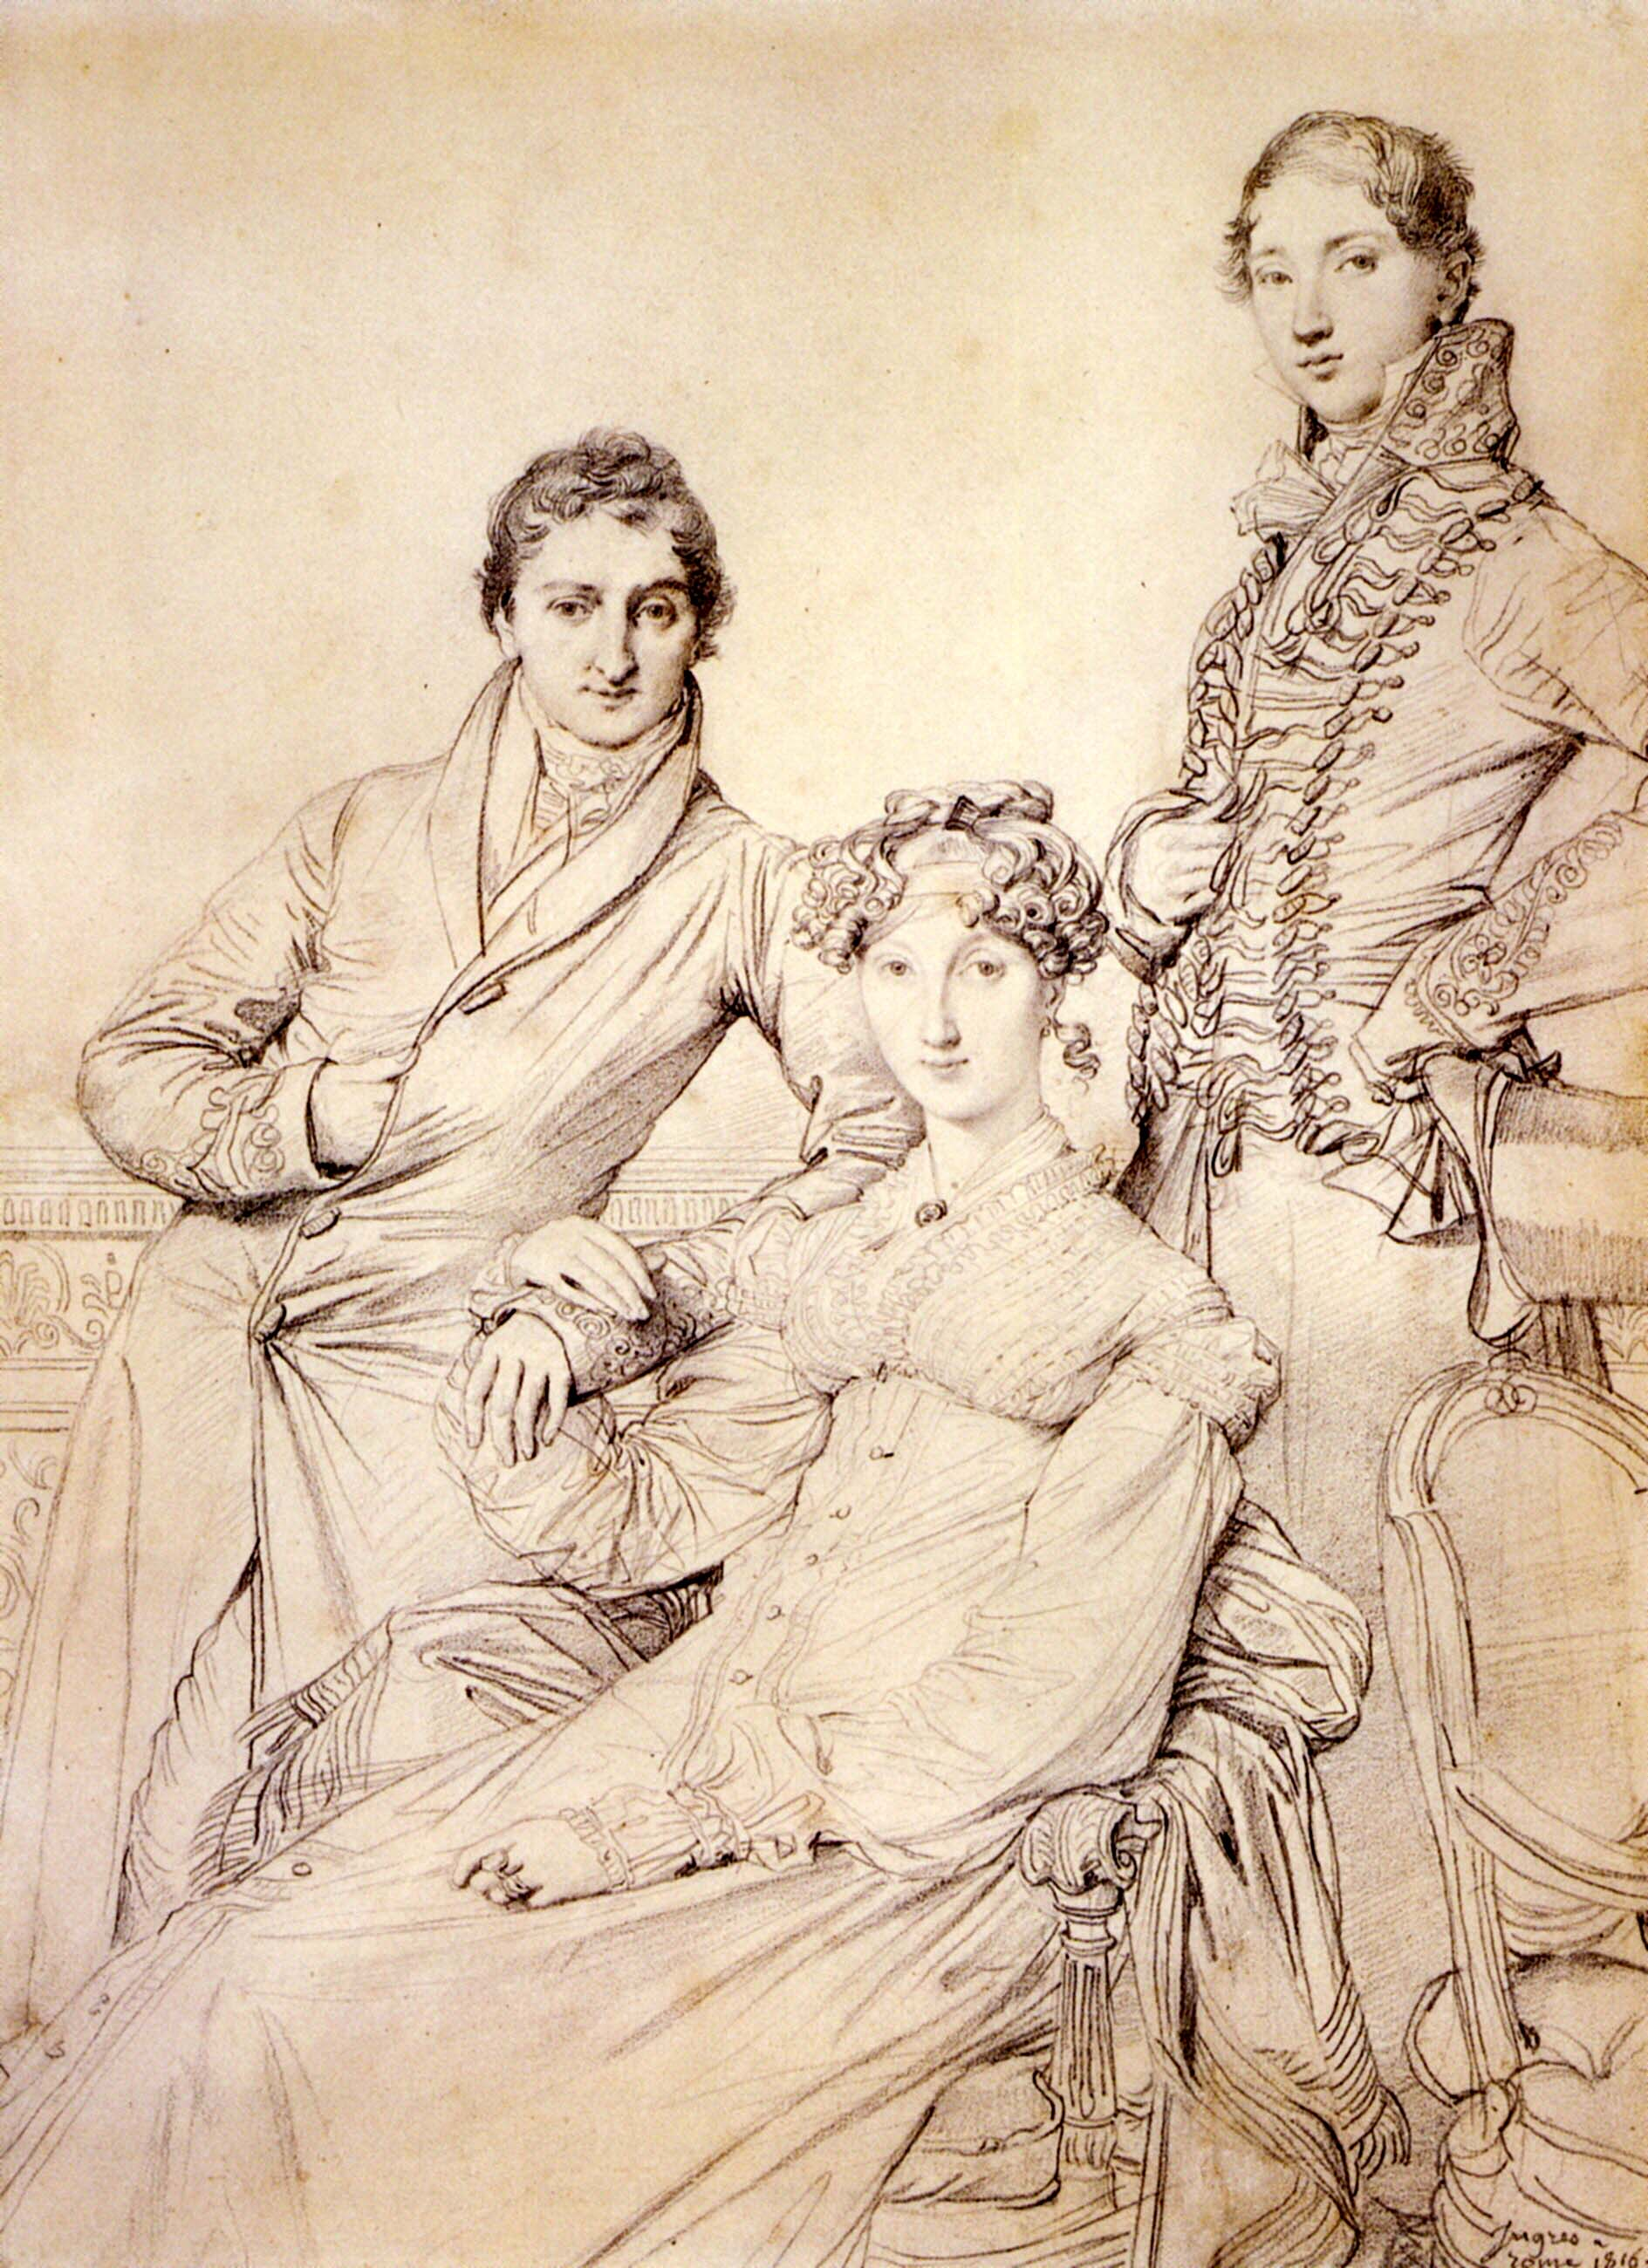 https://i1.wp.com/uploads7.wikipaintings.org/images/jean-auguste-dominique-ingres/mr-and-mrs-woodhead-with-rev-henry-comber-as-a-youth.jpg